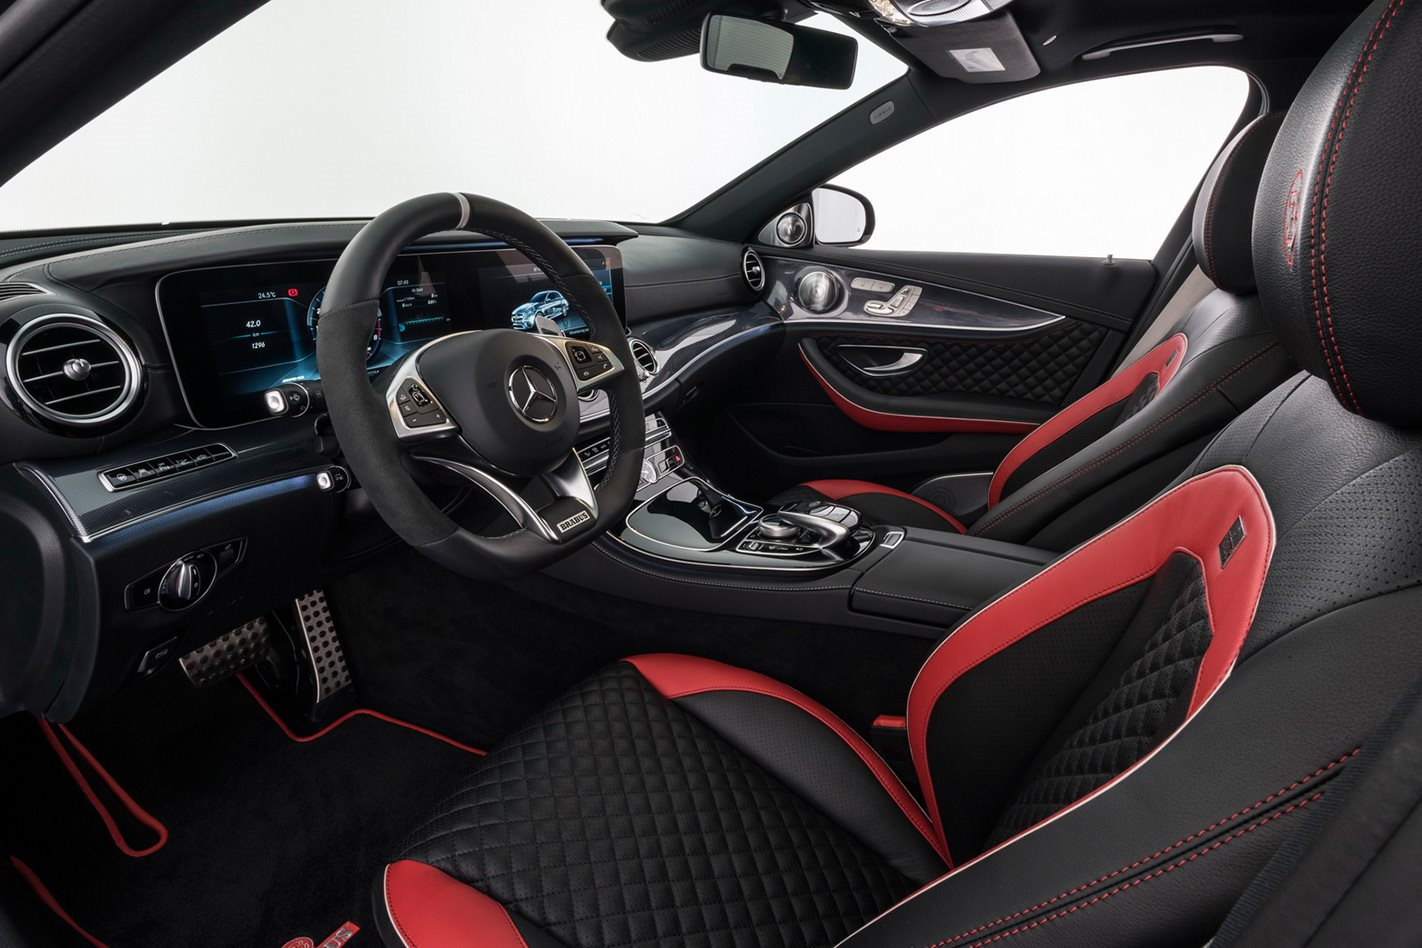 Mercedes-AMG-E63-based-Brabus-700-interior.jpg